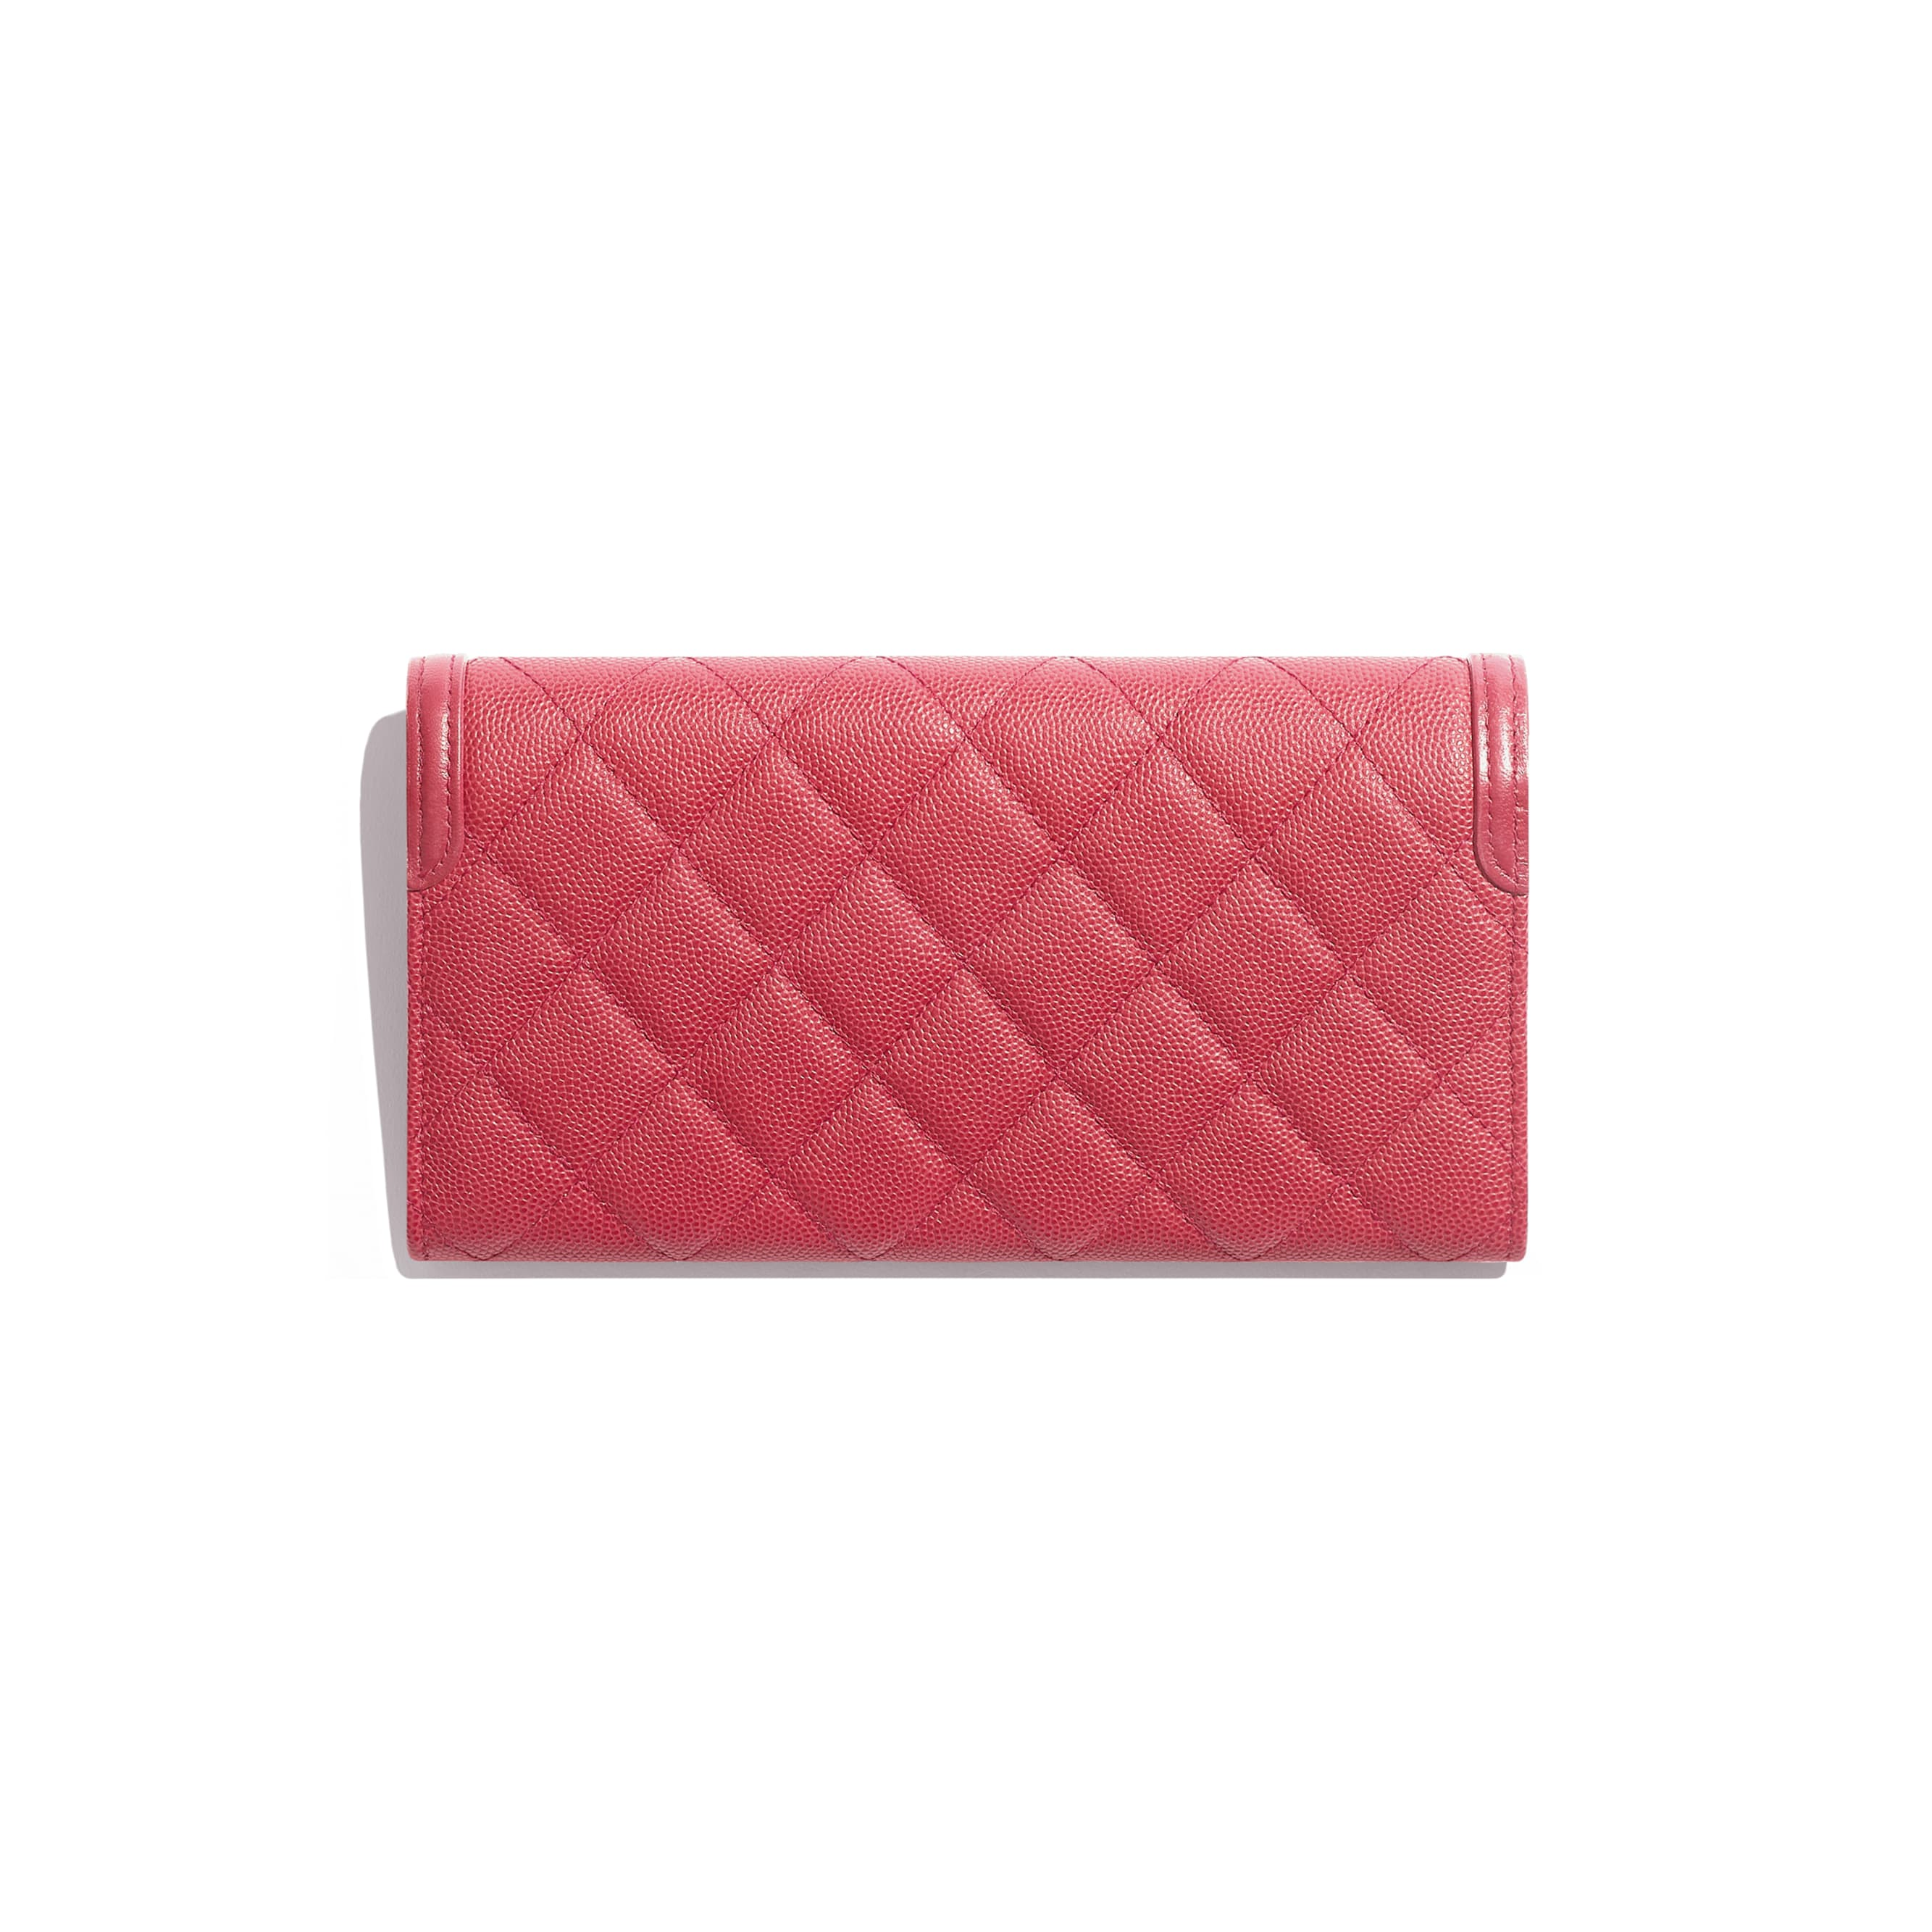 Long Flap Wallet - Pink - Grained Calfskin & Gold-Tone Metal - Alternative view - see standard sized version